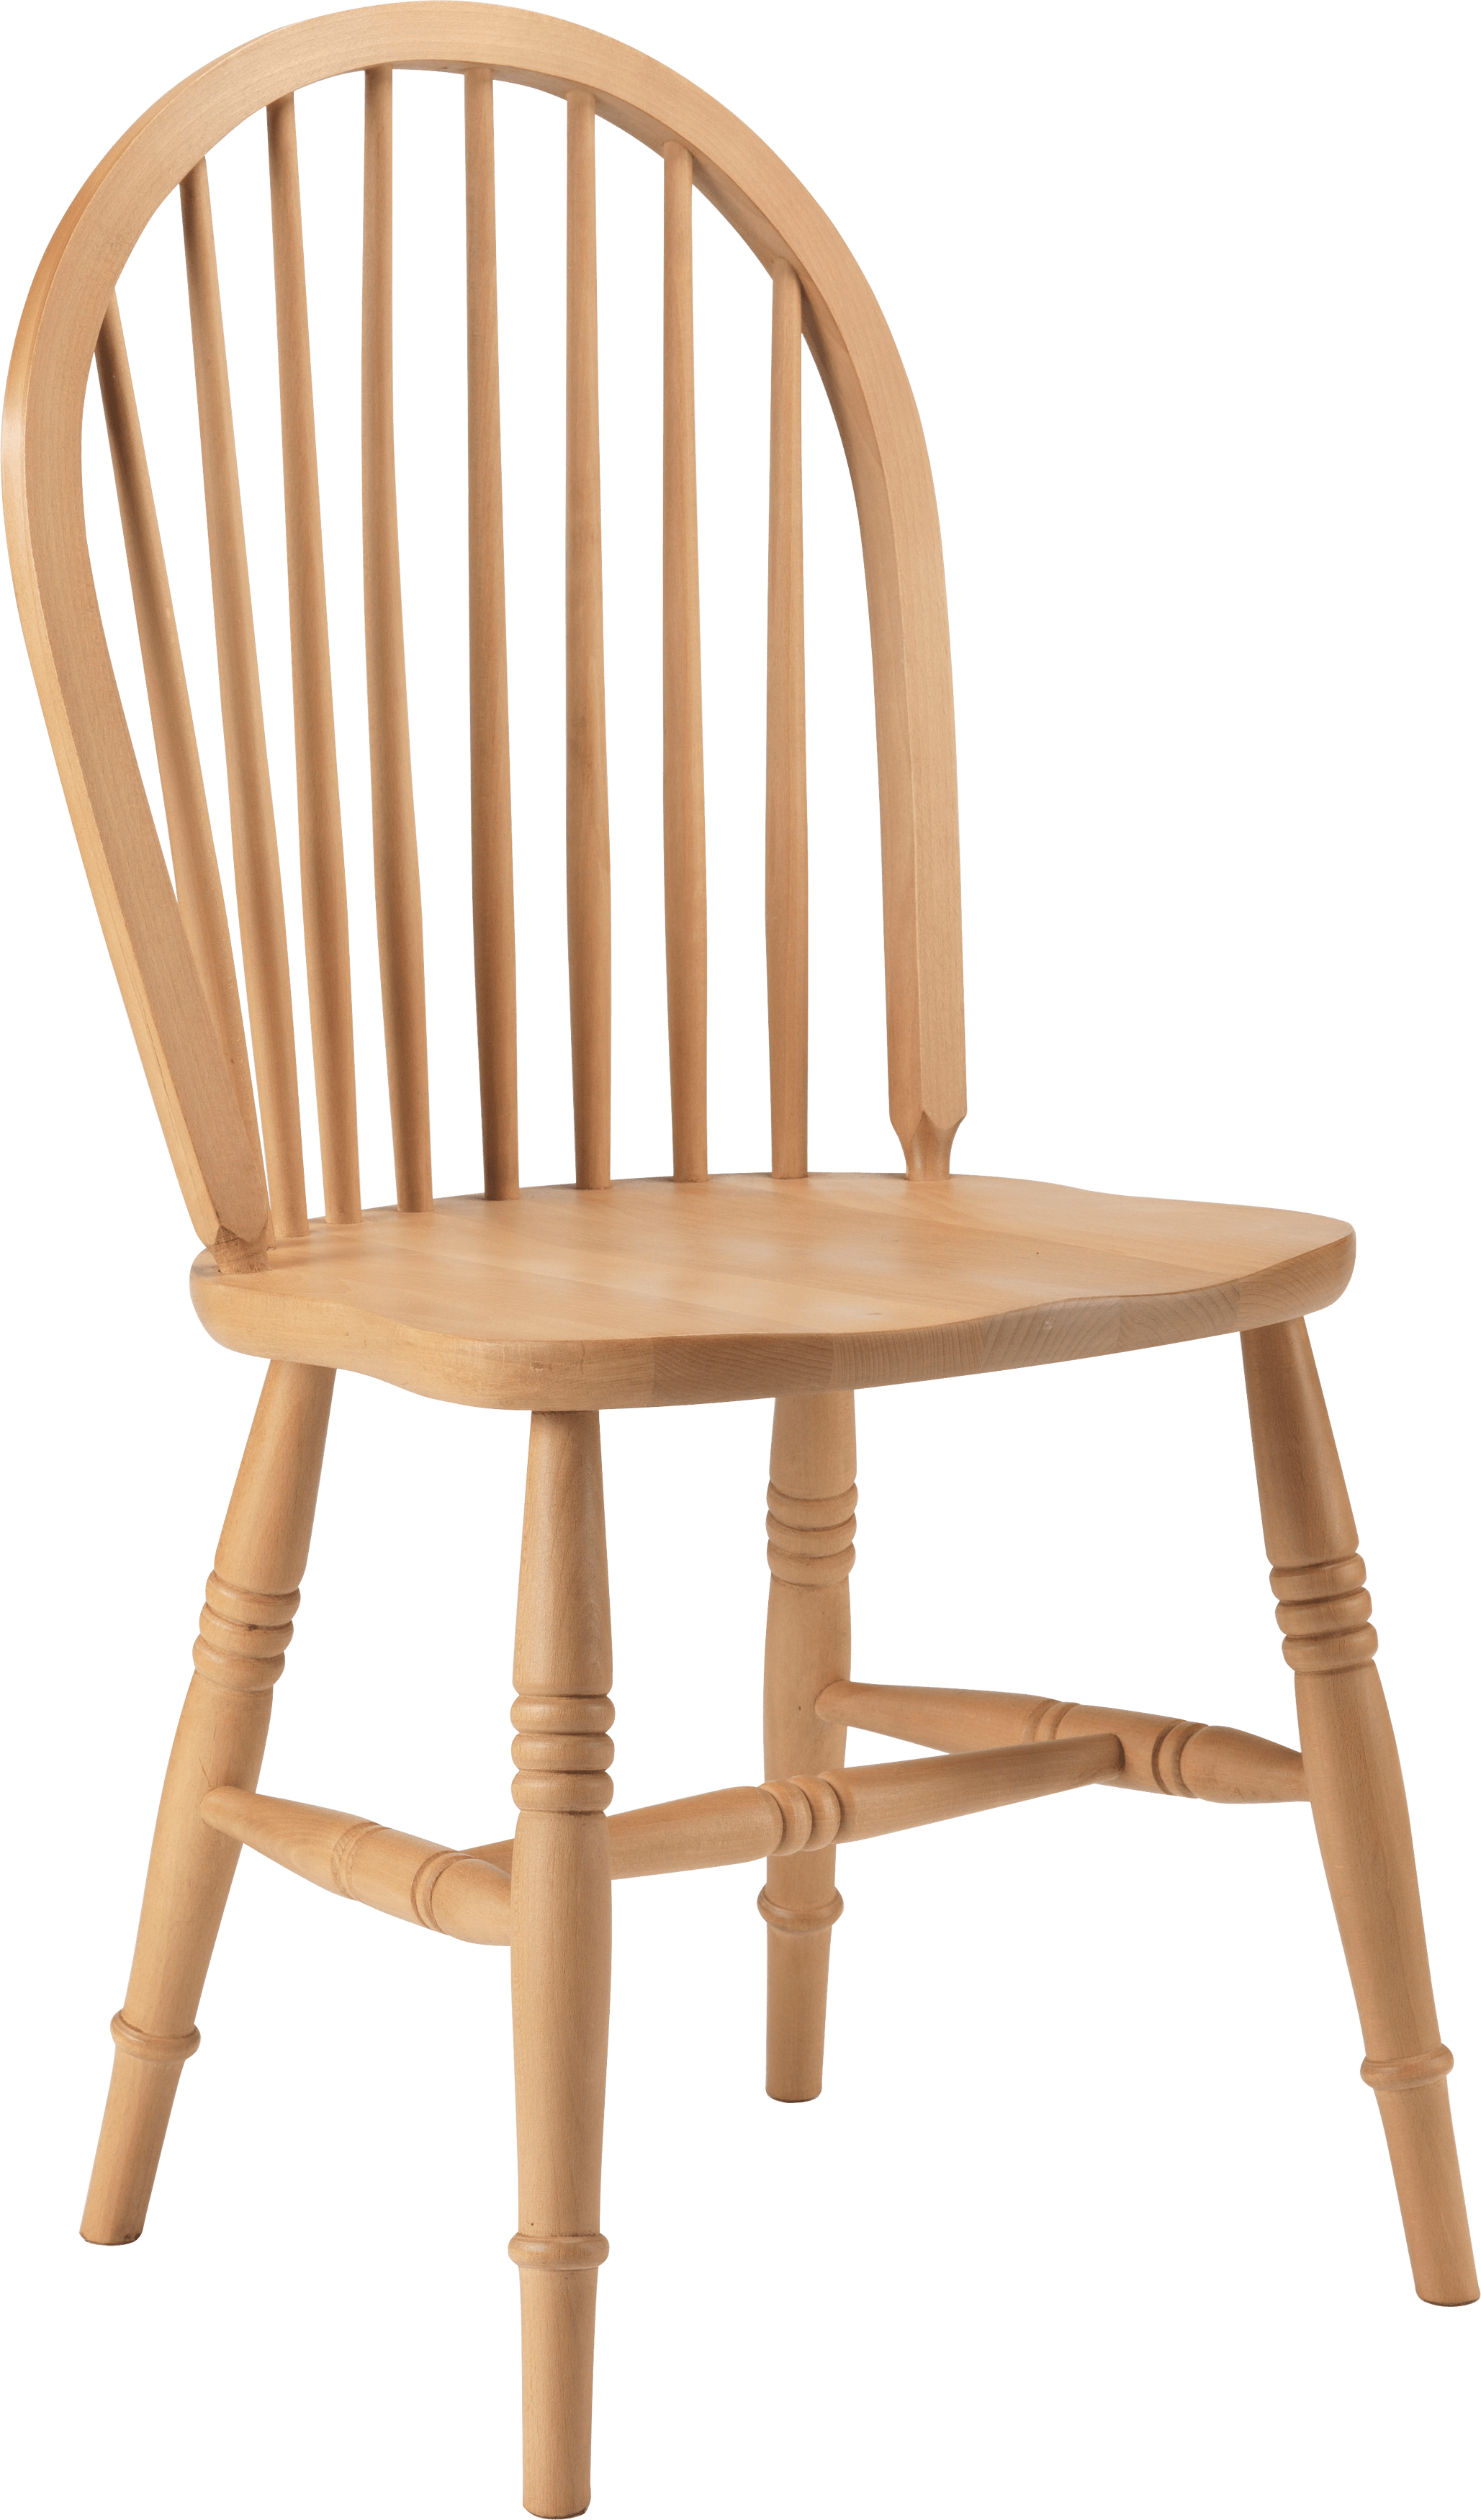 chair images hd swivel invented by thomas jefferson png free download image